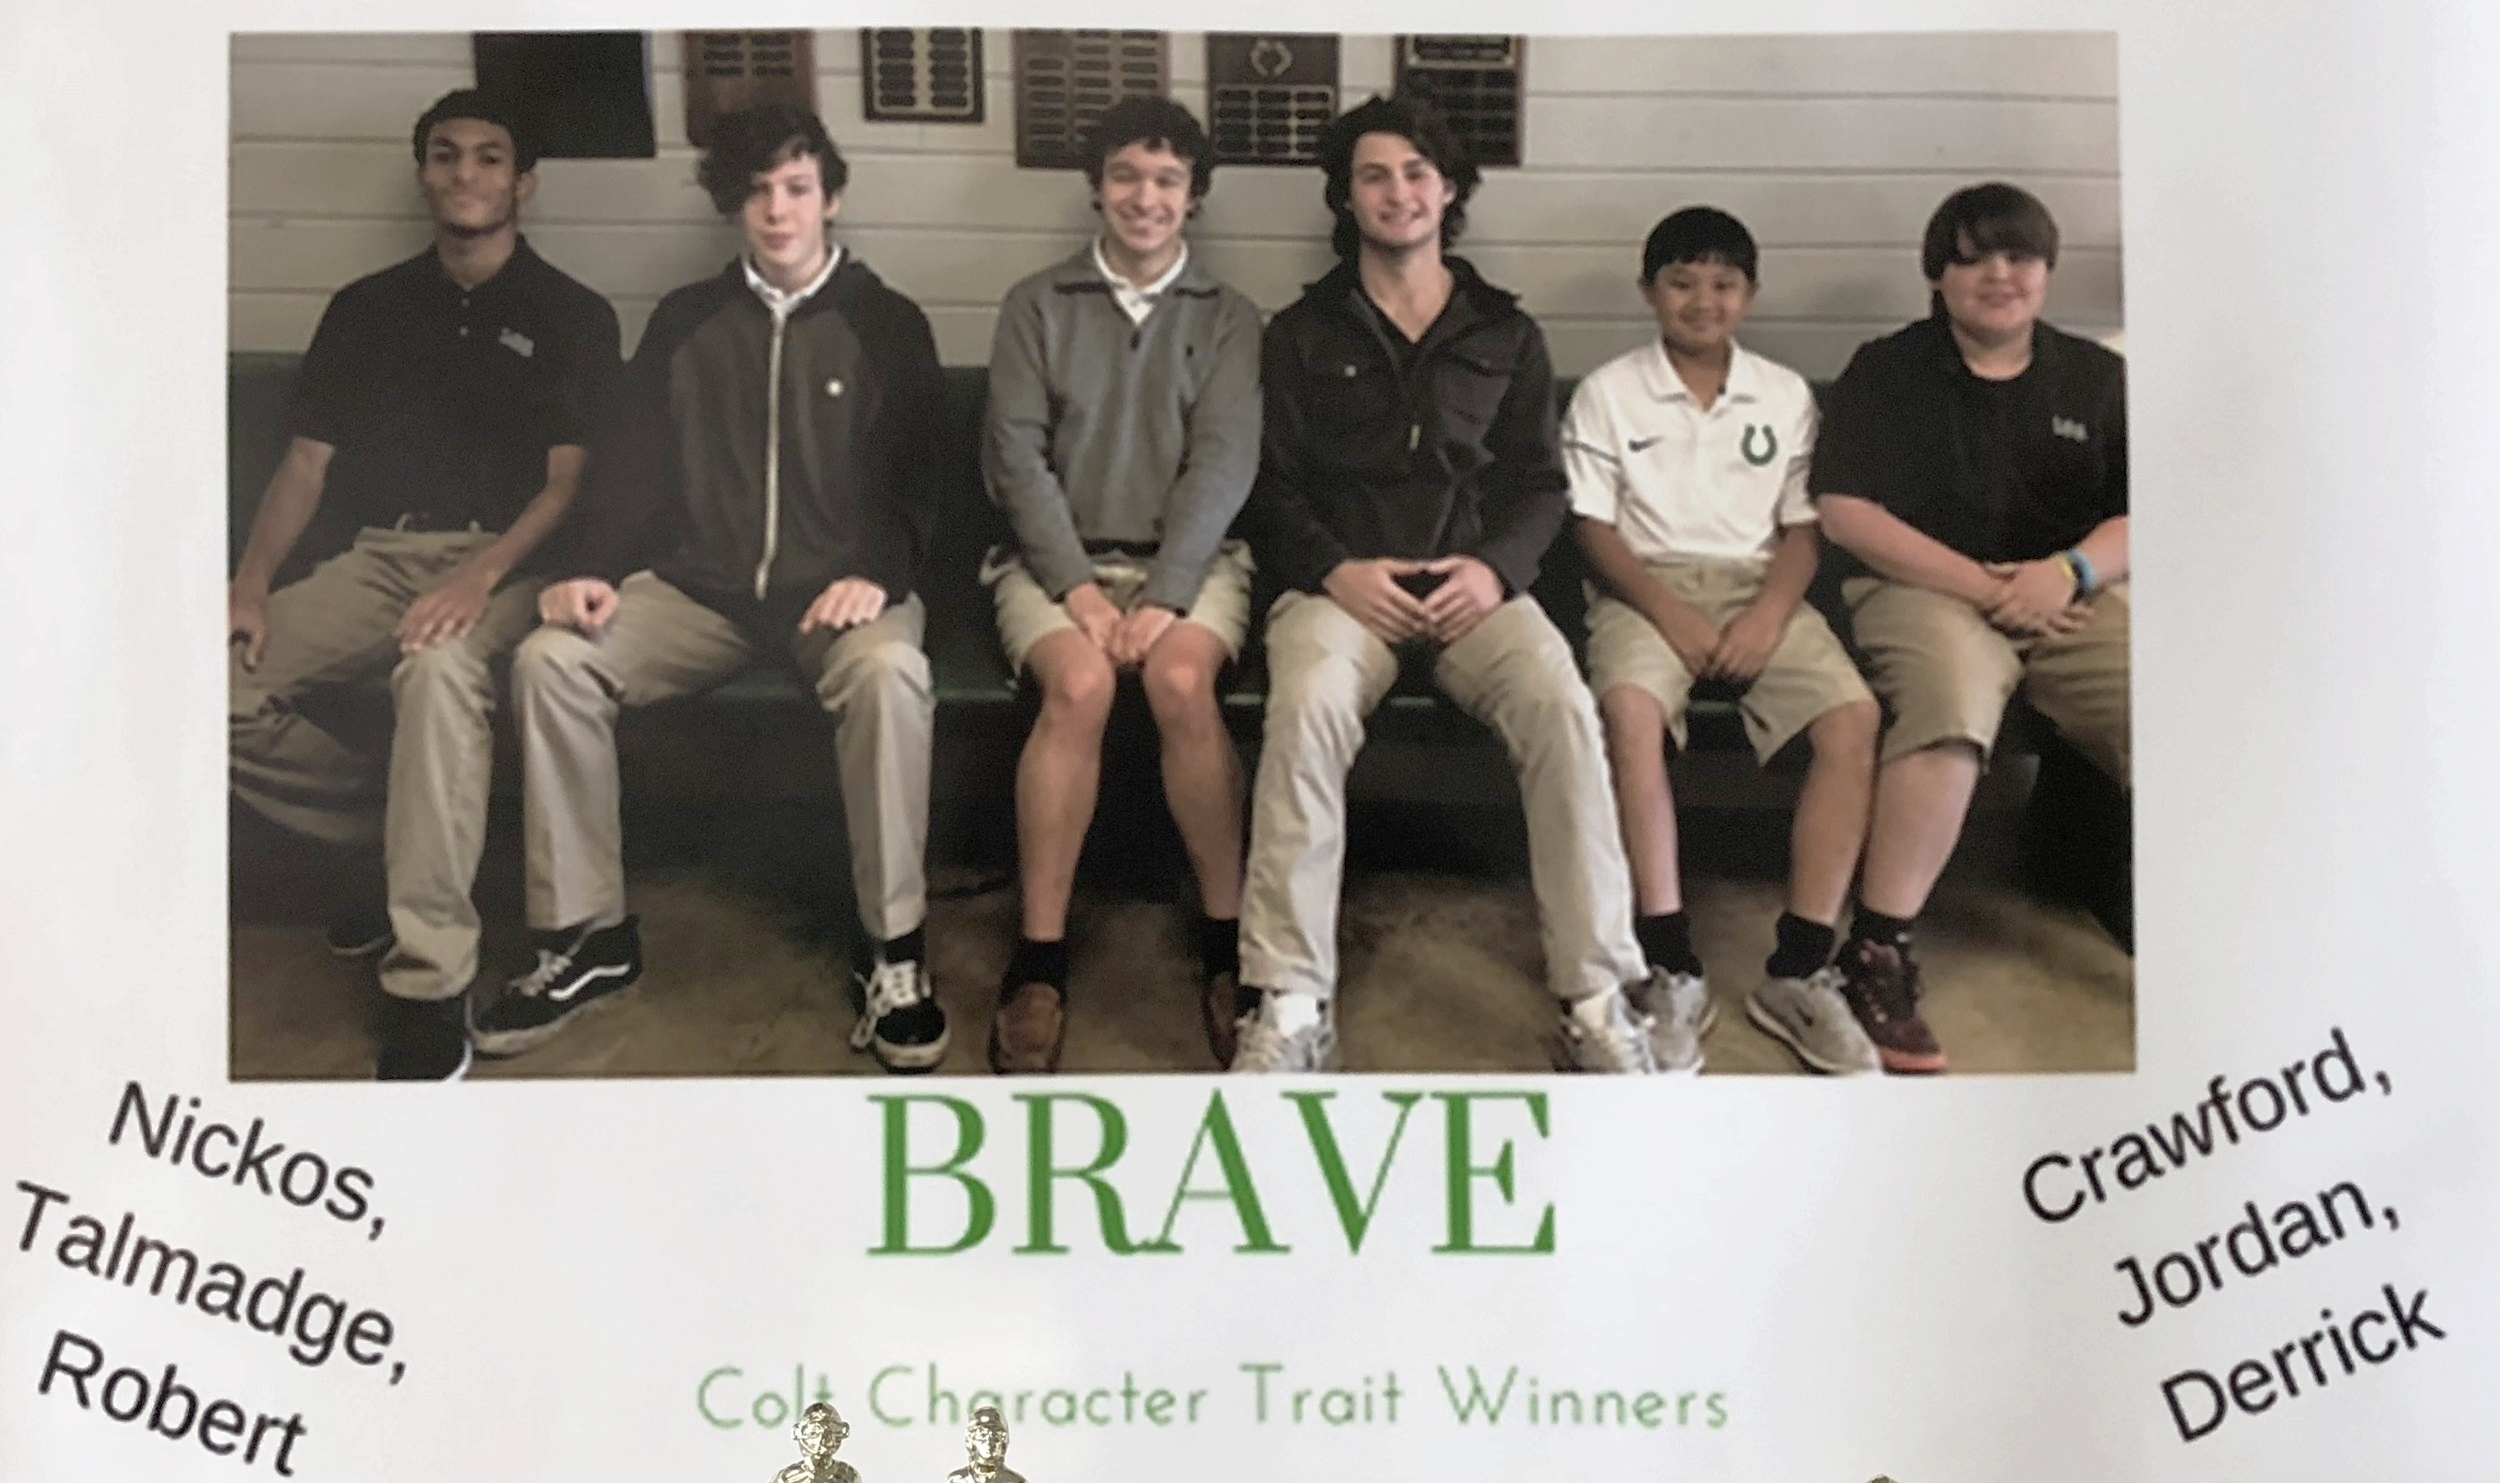 Brave:  7th Grade - Jordan Wong, 8th Grade - Derrick Ashmore, 9th Grade - Nickos Nolan, 10th Grade - Talmadge Lewis, 11th Grade - Crawford Allen, 12th Grade - Robert Noe